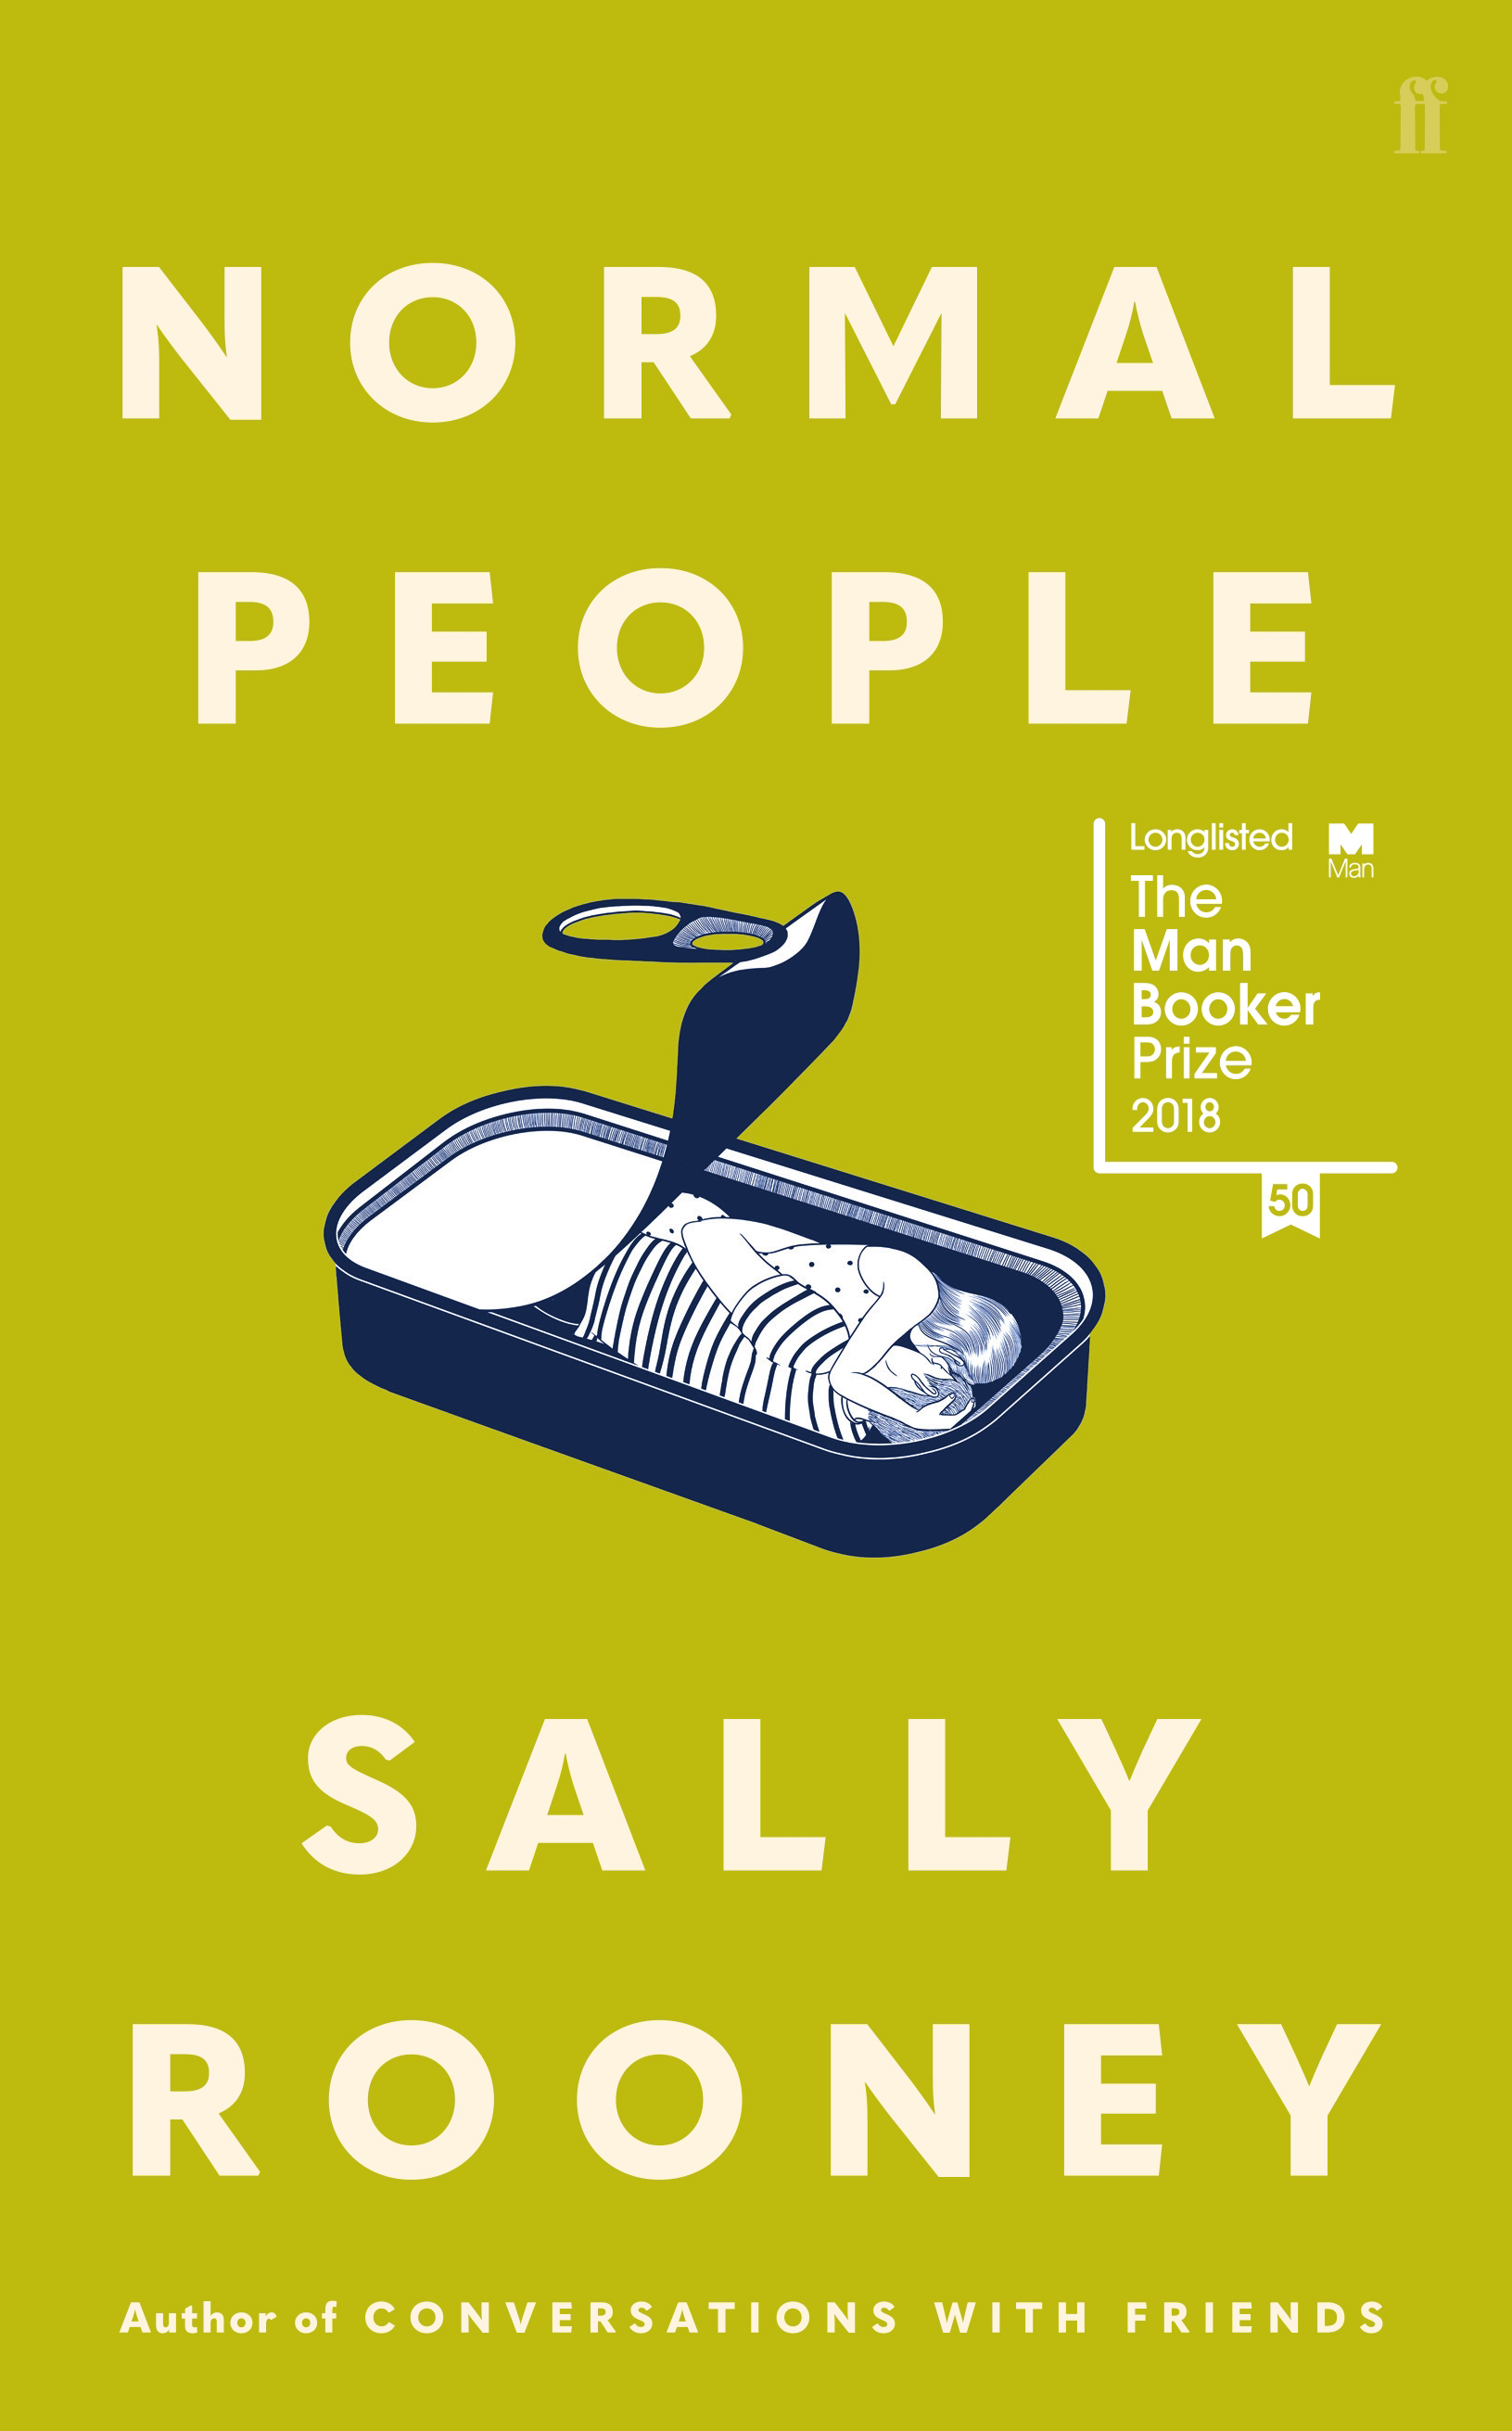 Normal People by Sally Rooney, ISBN: 9780571347292